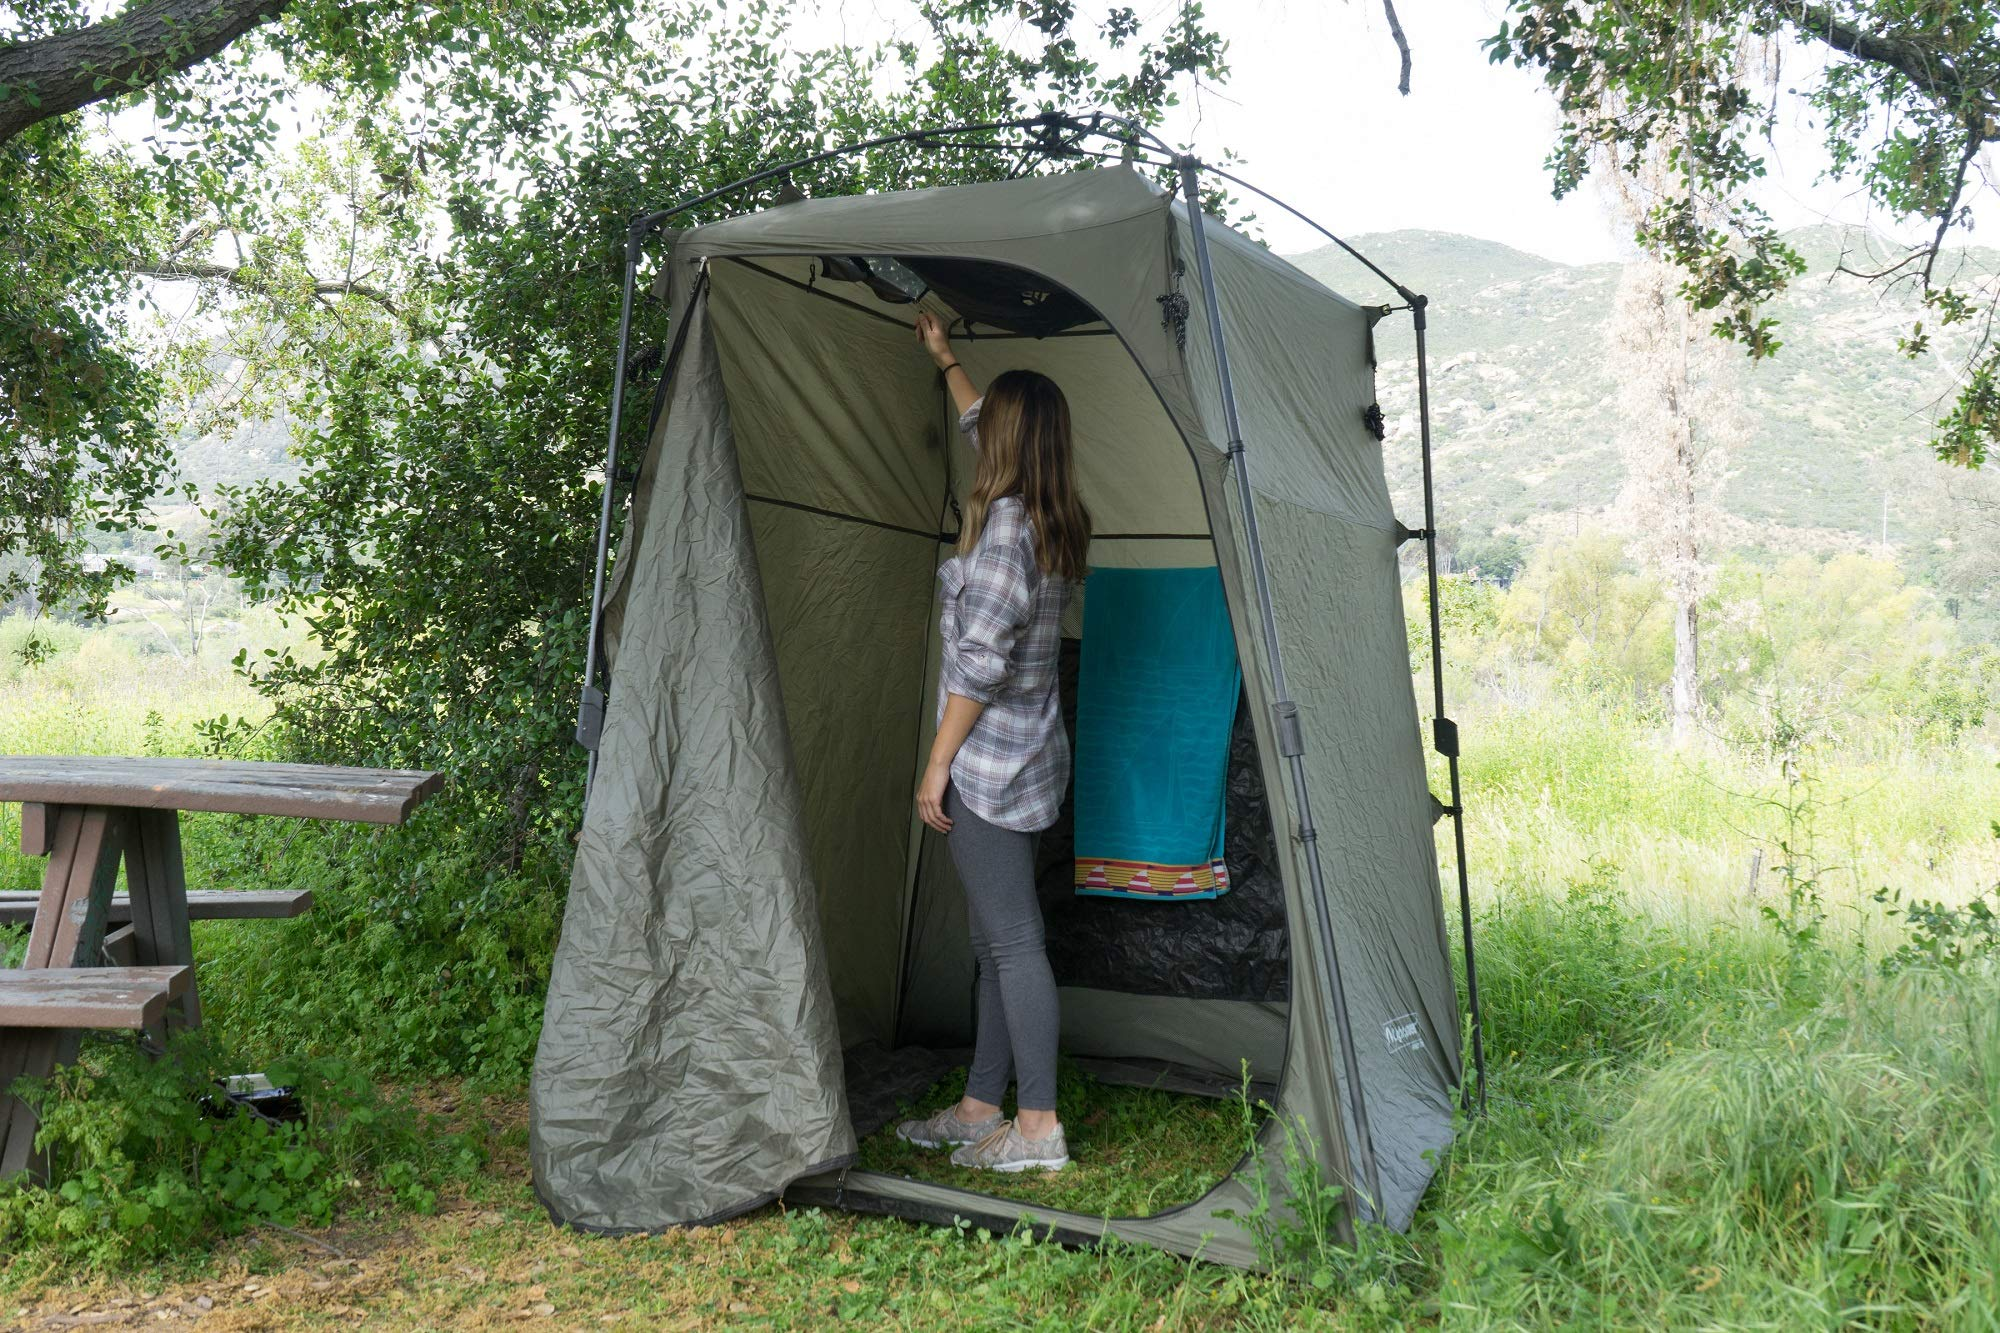 Lightspeed Outdoors Xtra Wide Quick Set Up Privacy Tent, Toilet, Camp Shower, Portable Changing Room by Lightspeed Outdoors (Image #3)